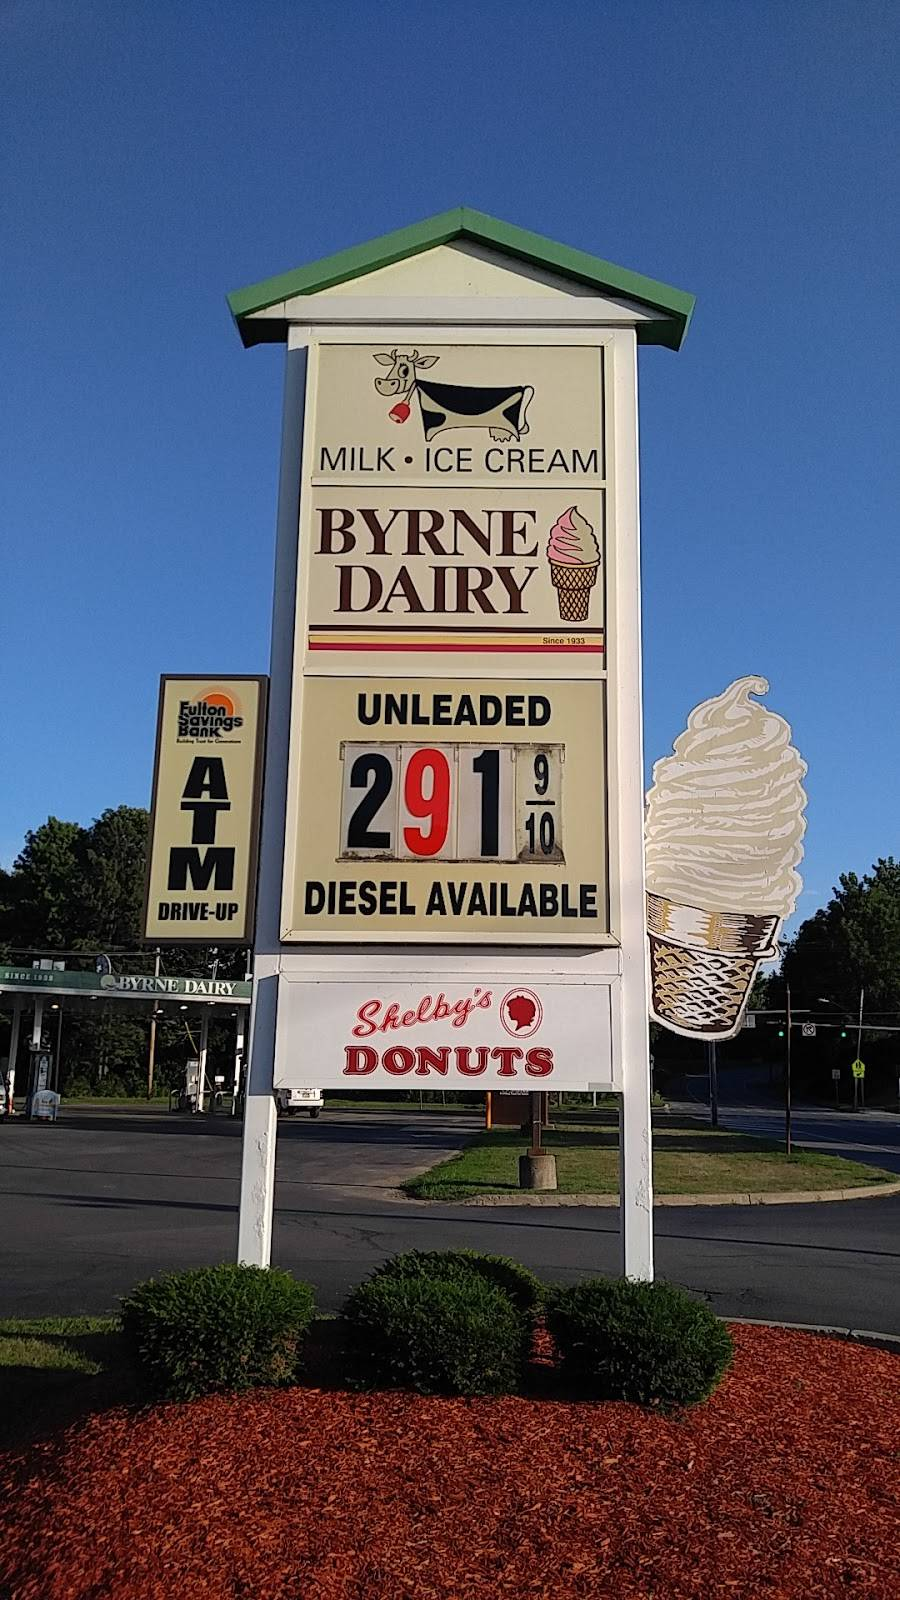 Byrne Dairy and Deli | bakery | 1013 Emery St, Fulton, NY 13069, USA | 3155933007 OR +1 315-593-3007